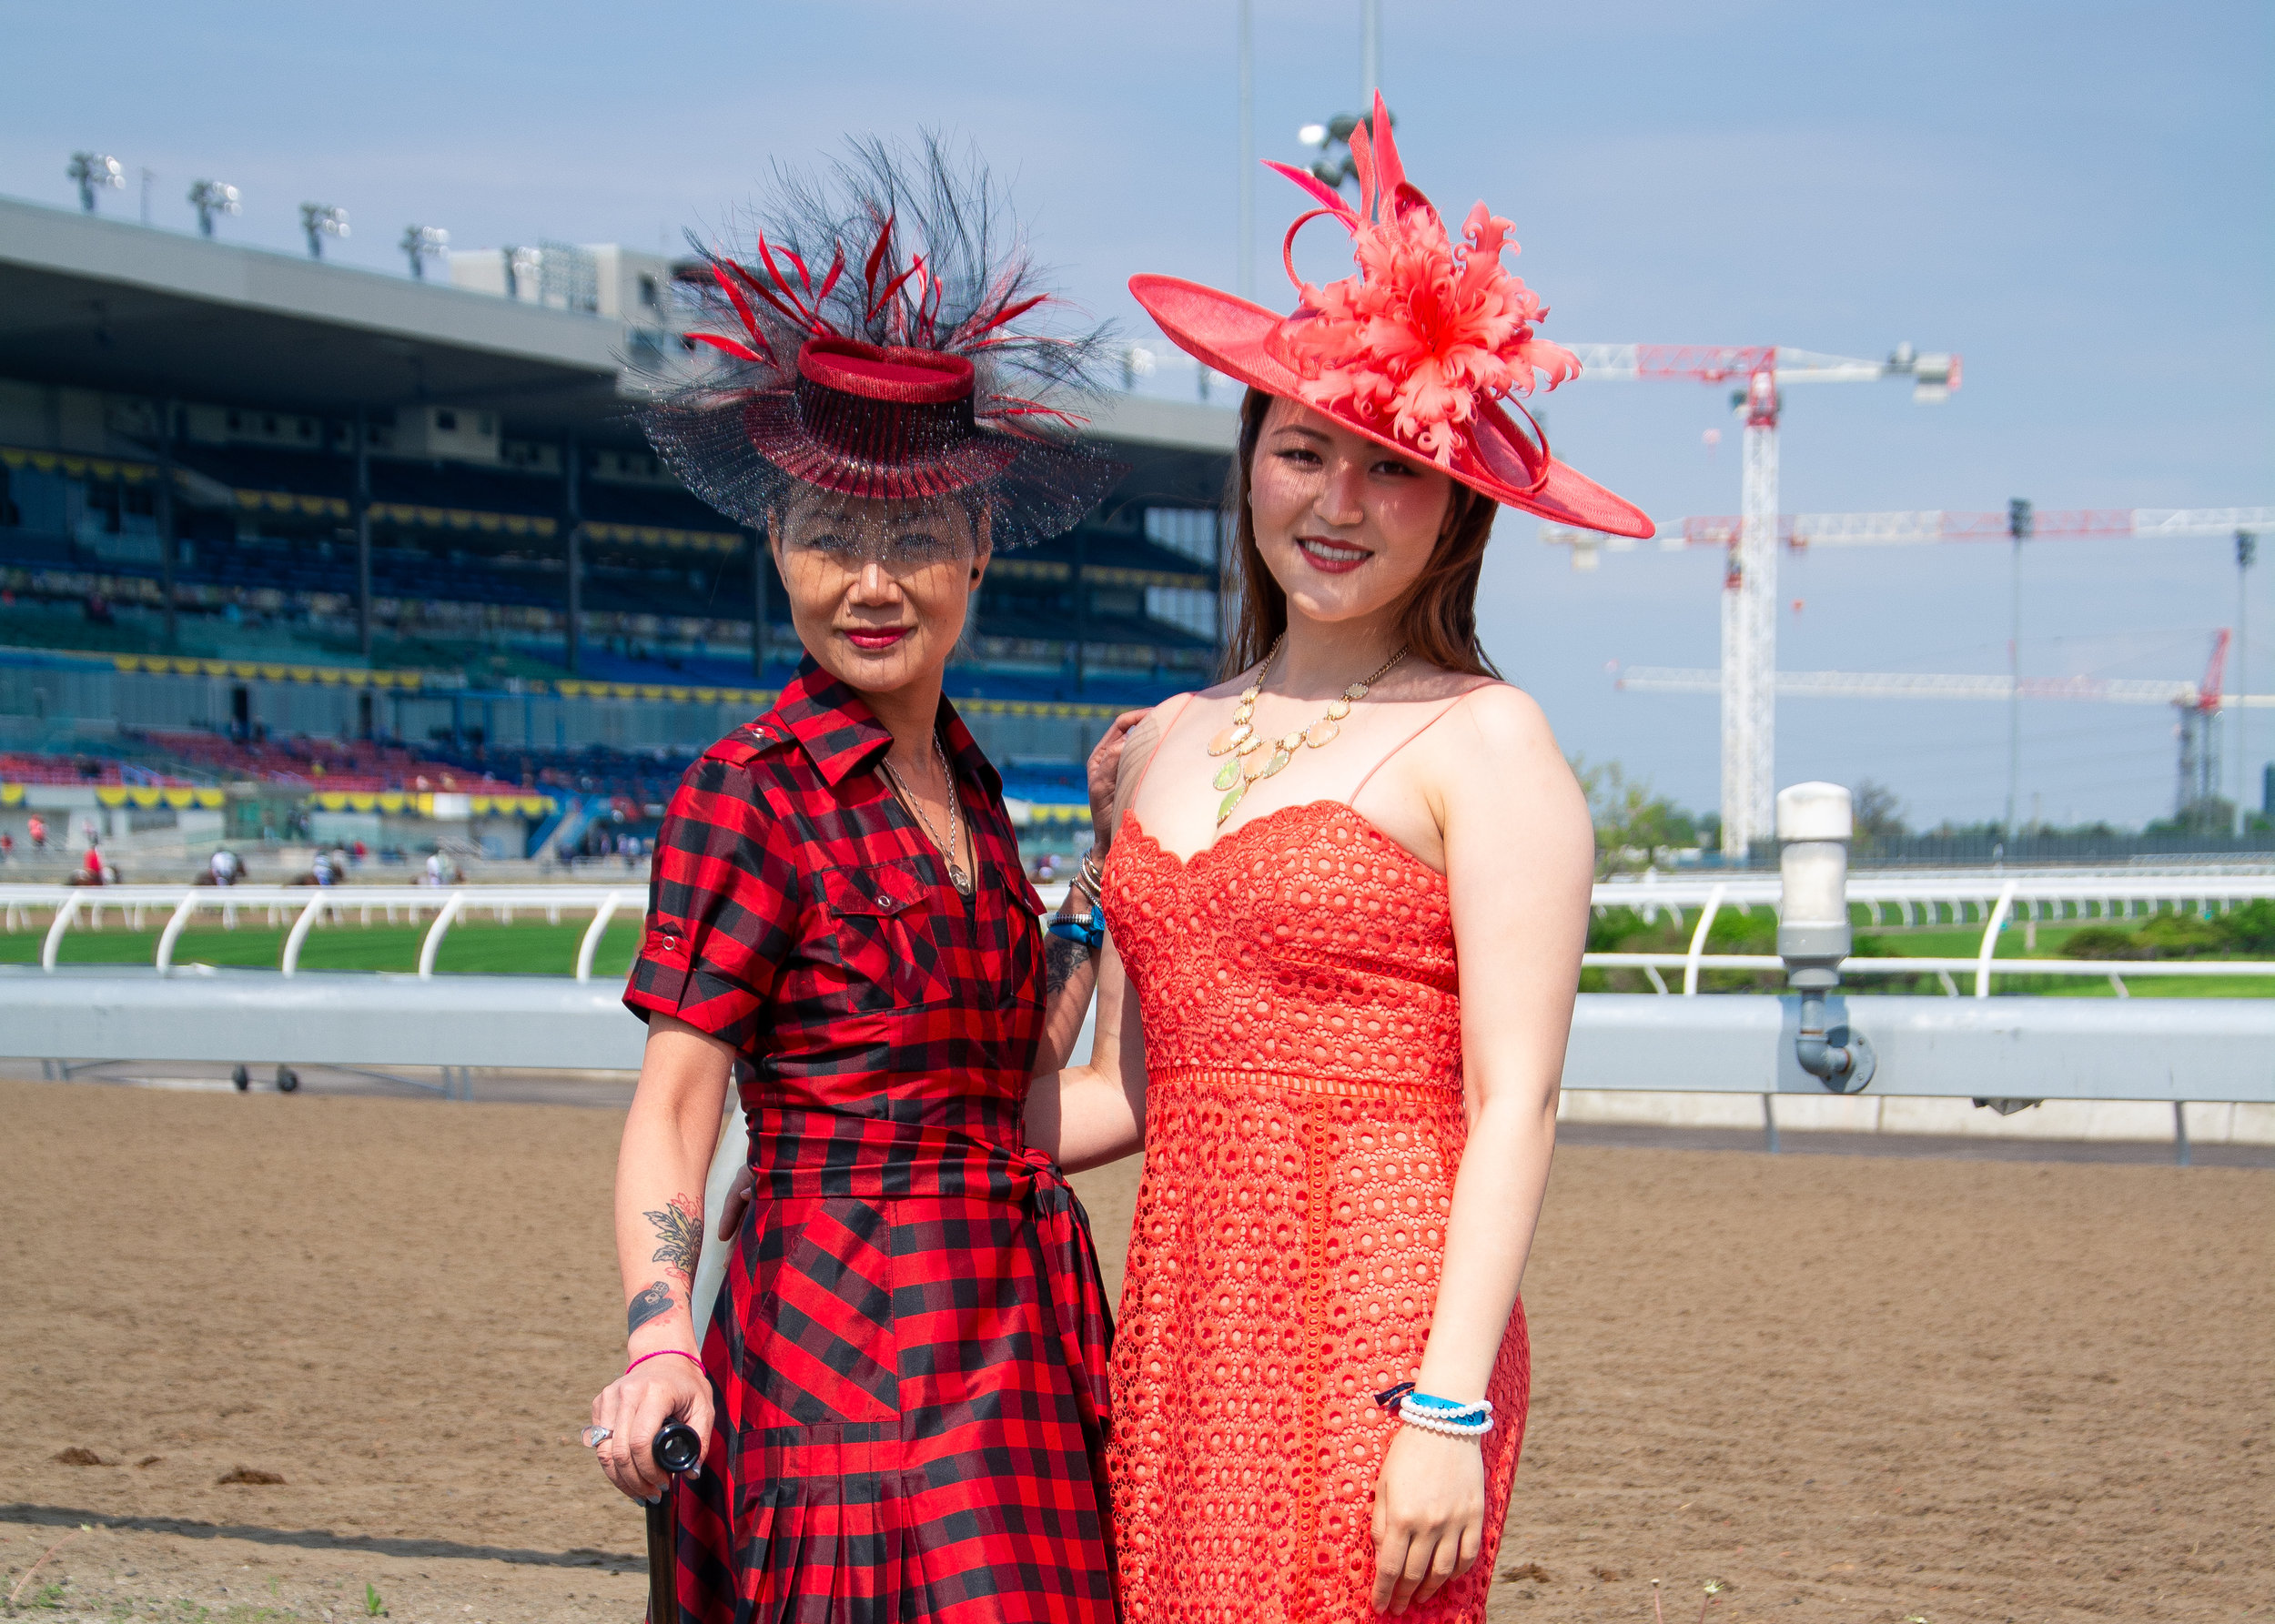 Jay Cheng from Jaycow Millinery for Greenwood Stakes by Jesús Maza_05.jpg